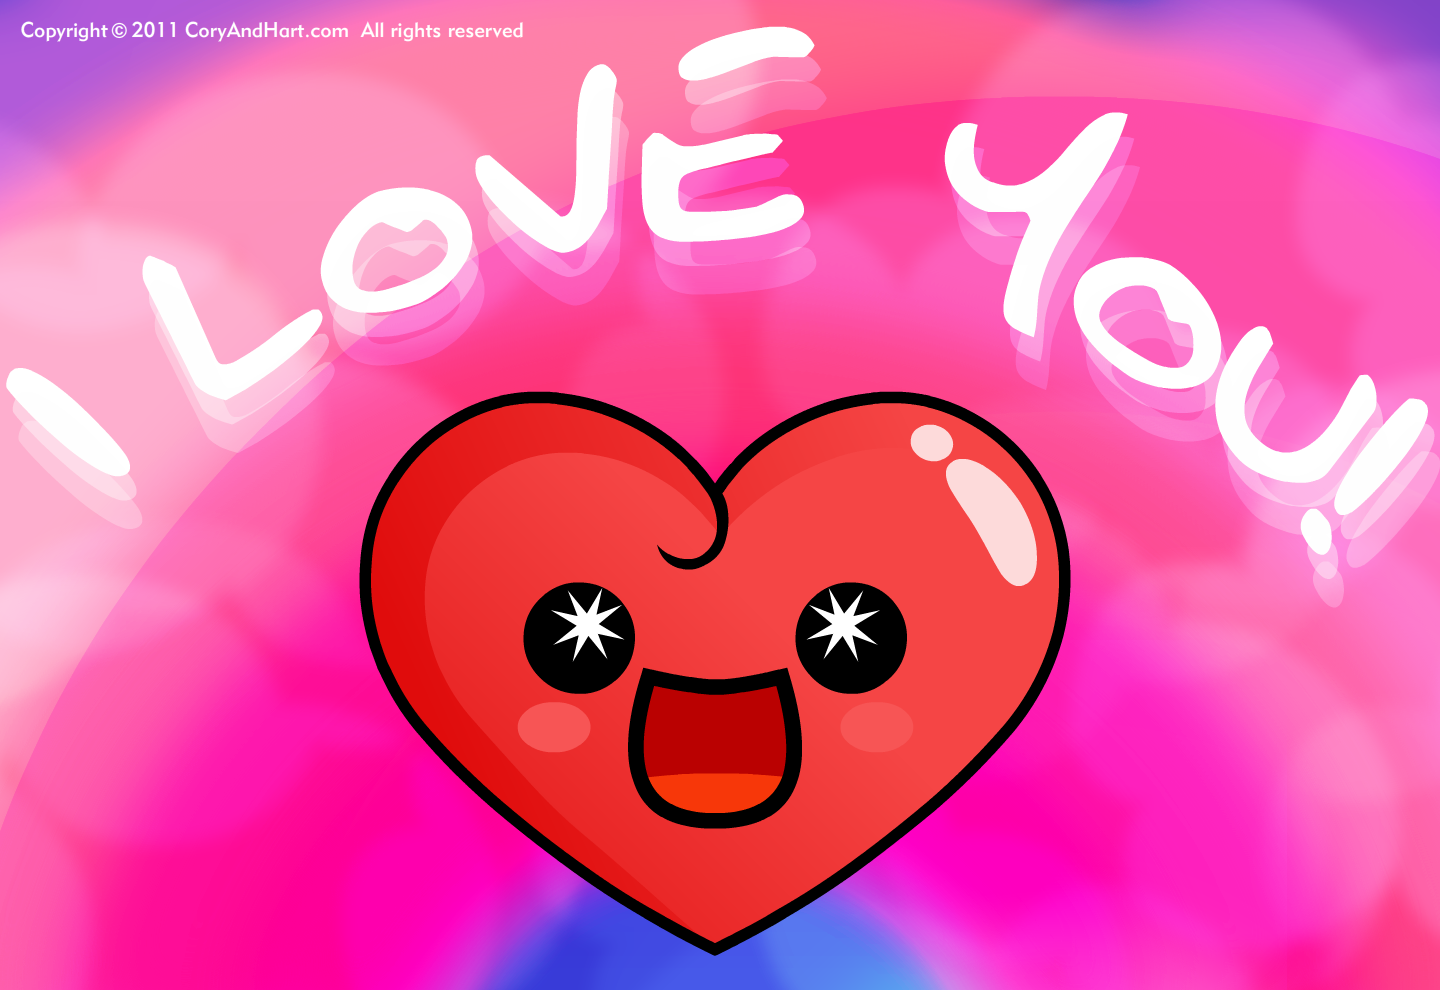 cute Love Wallpaper For Mobile : cute Love Wallpapers For Mobile 19 Background Wallpaper ...